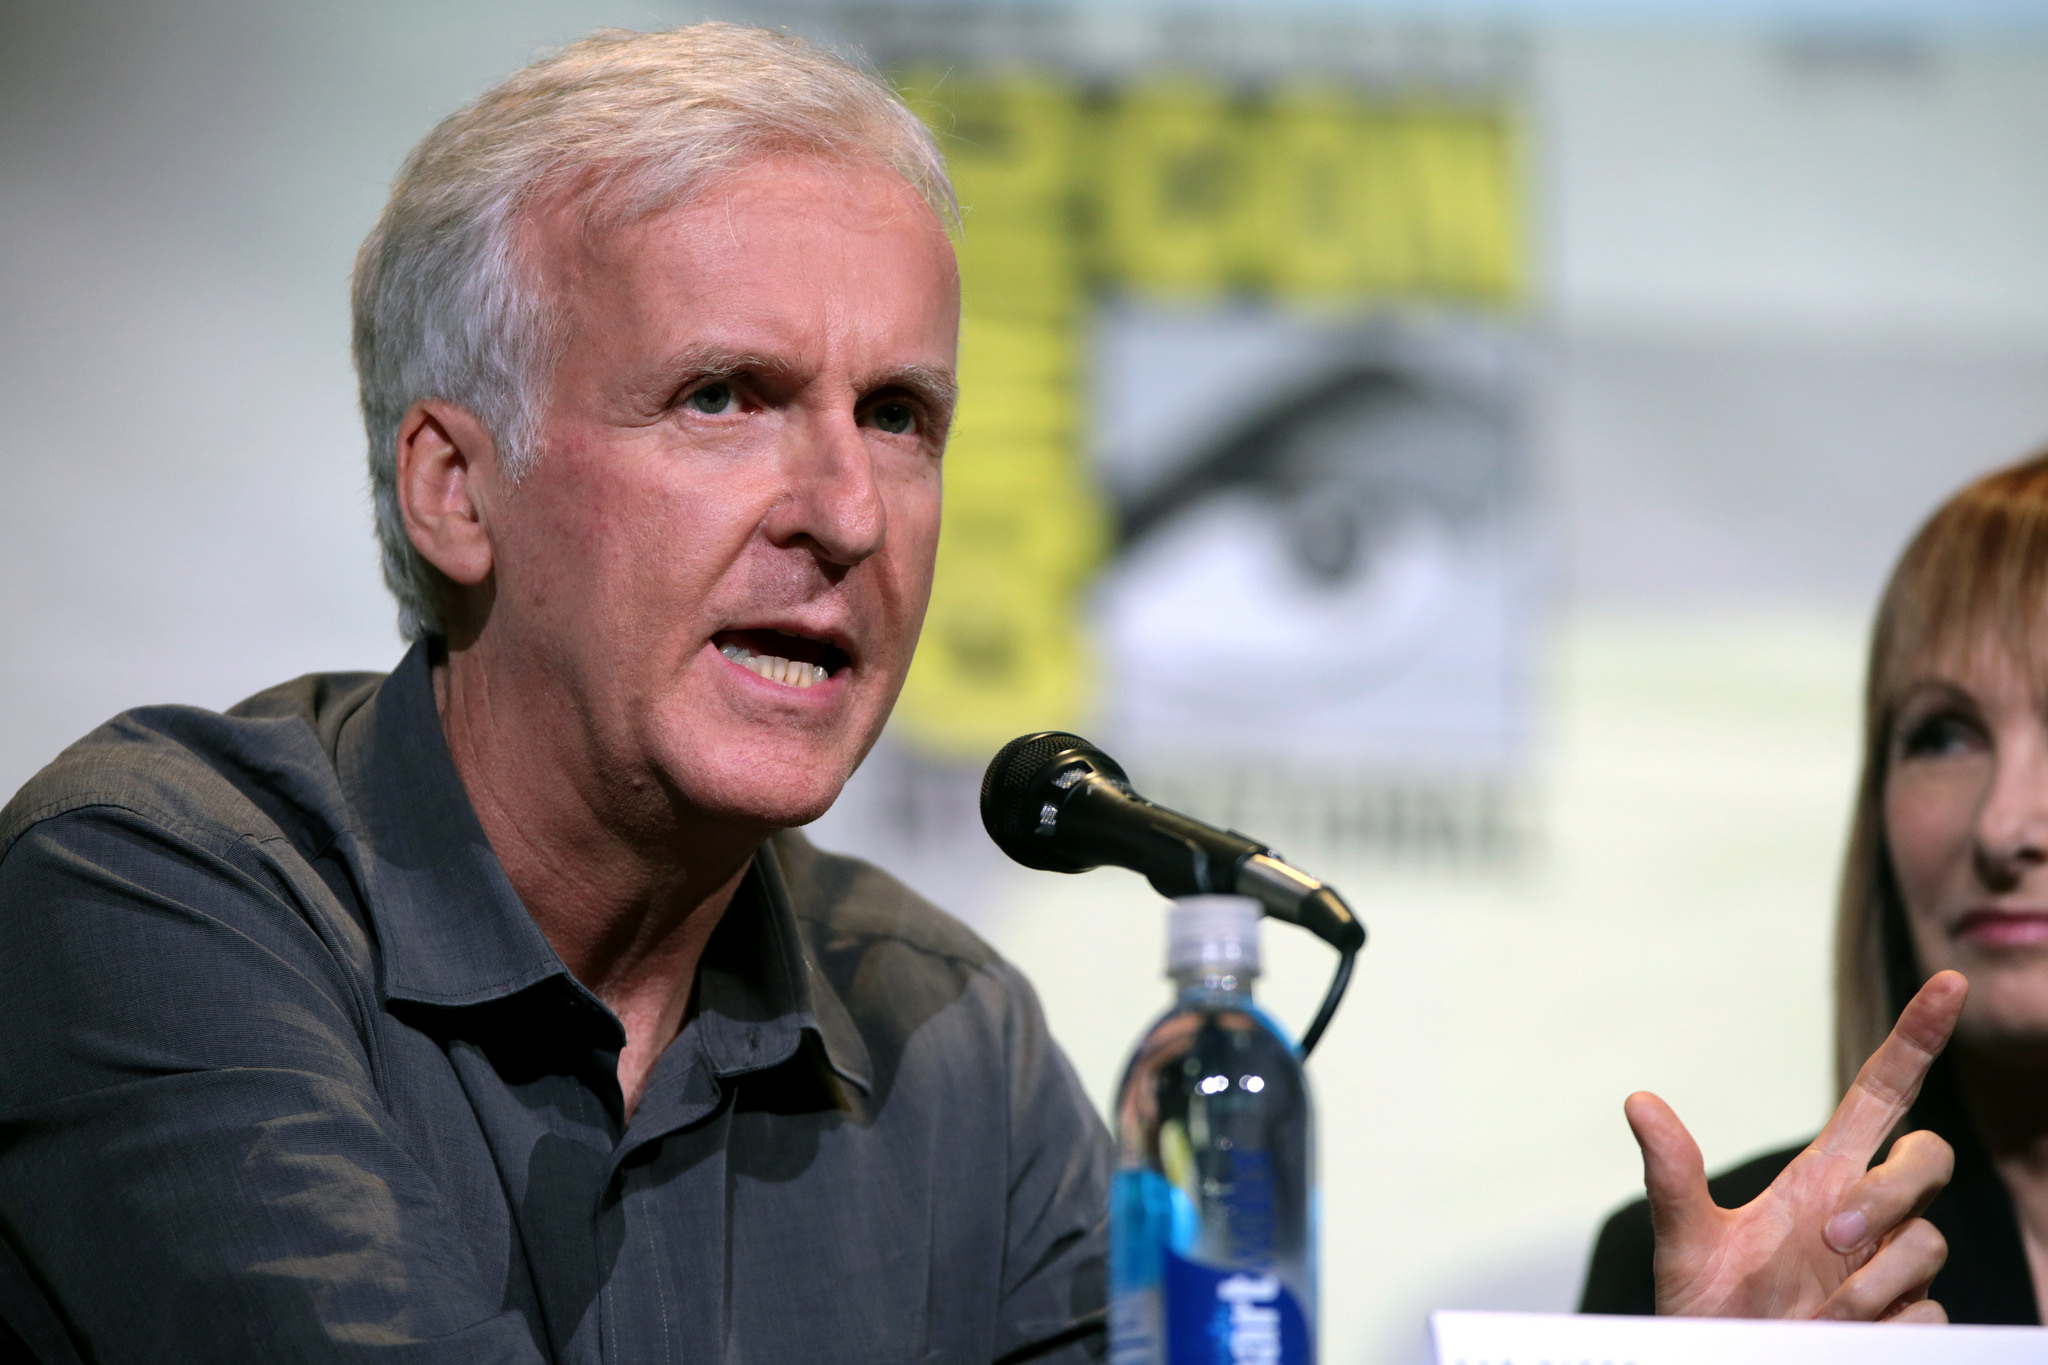 Vegan film director James Cameron